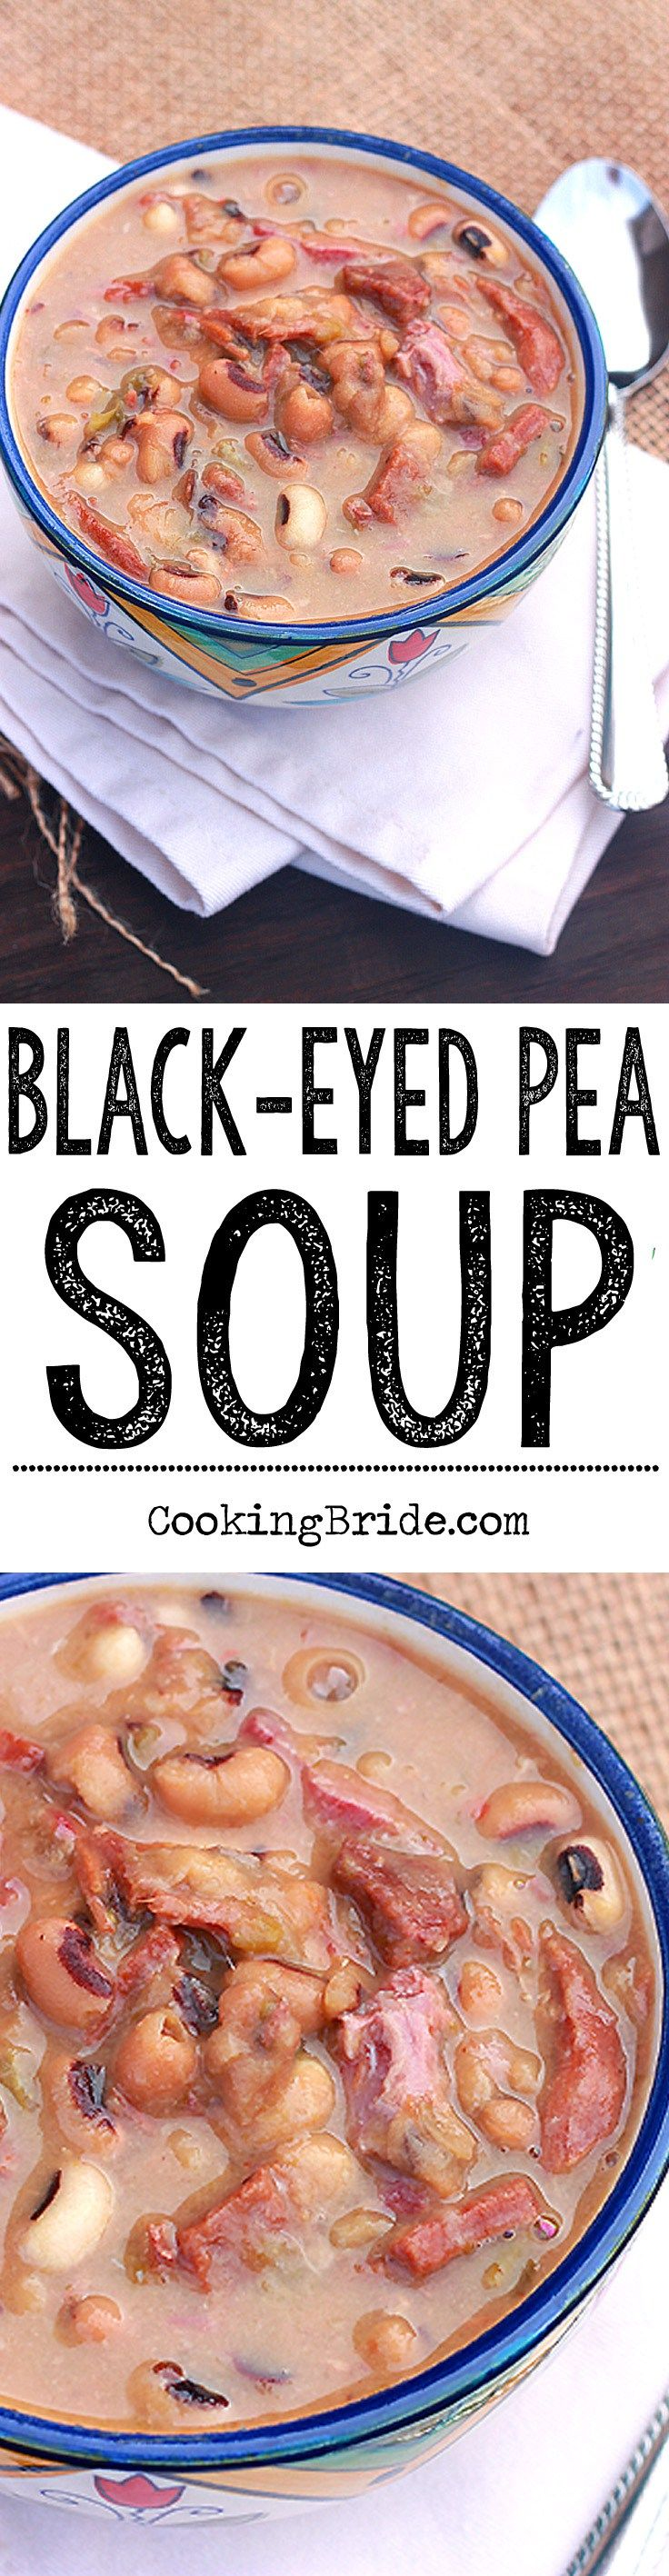 Looking for a tasty black eyed pea recipe for New Year's? Make yourself a pot of this spicy black eyed pea soup with ham.